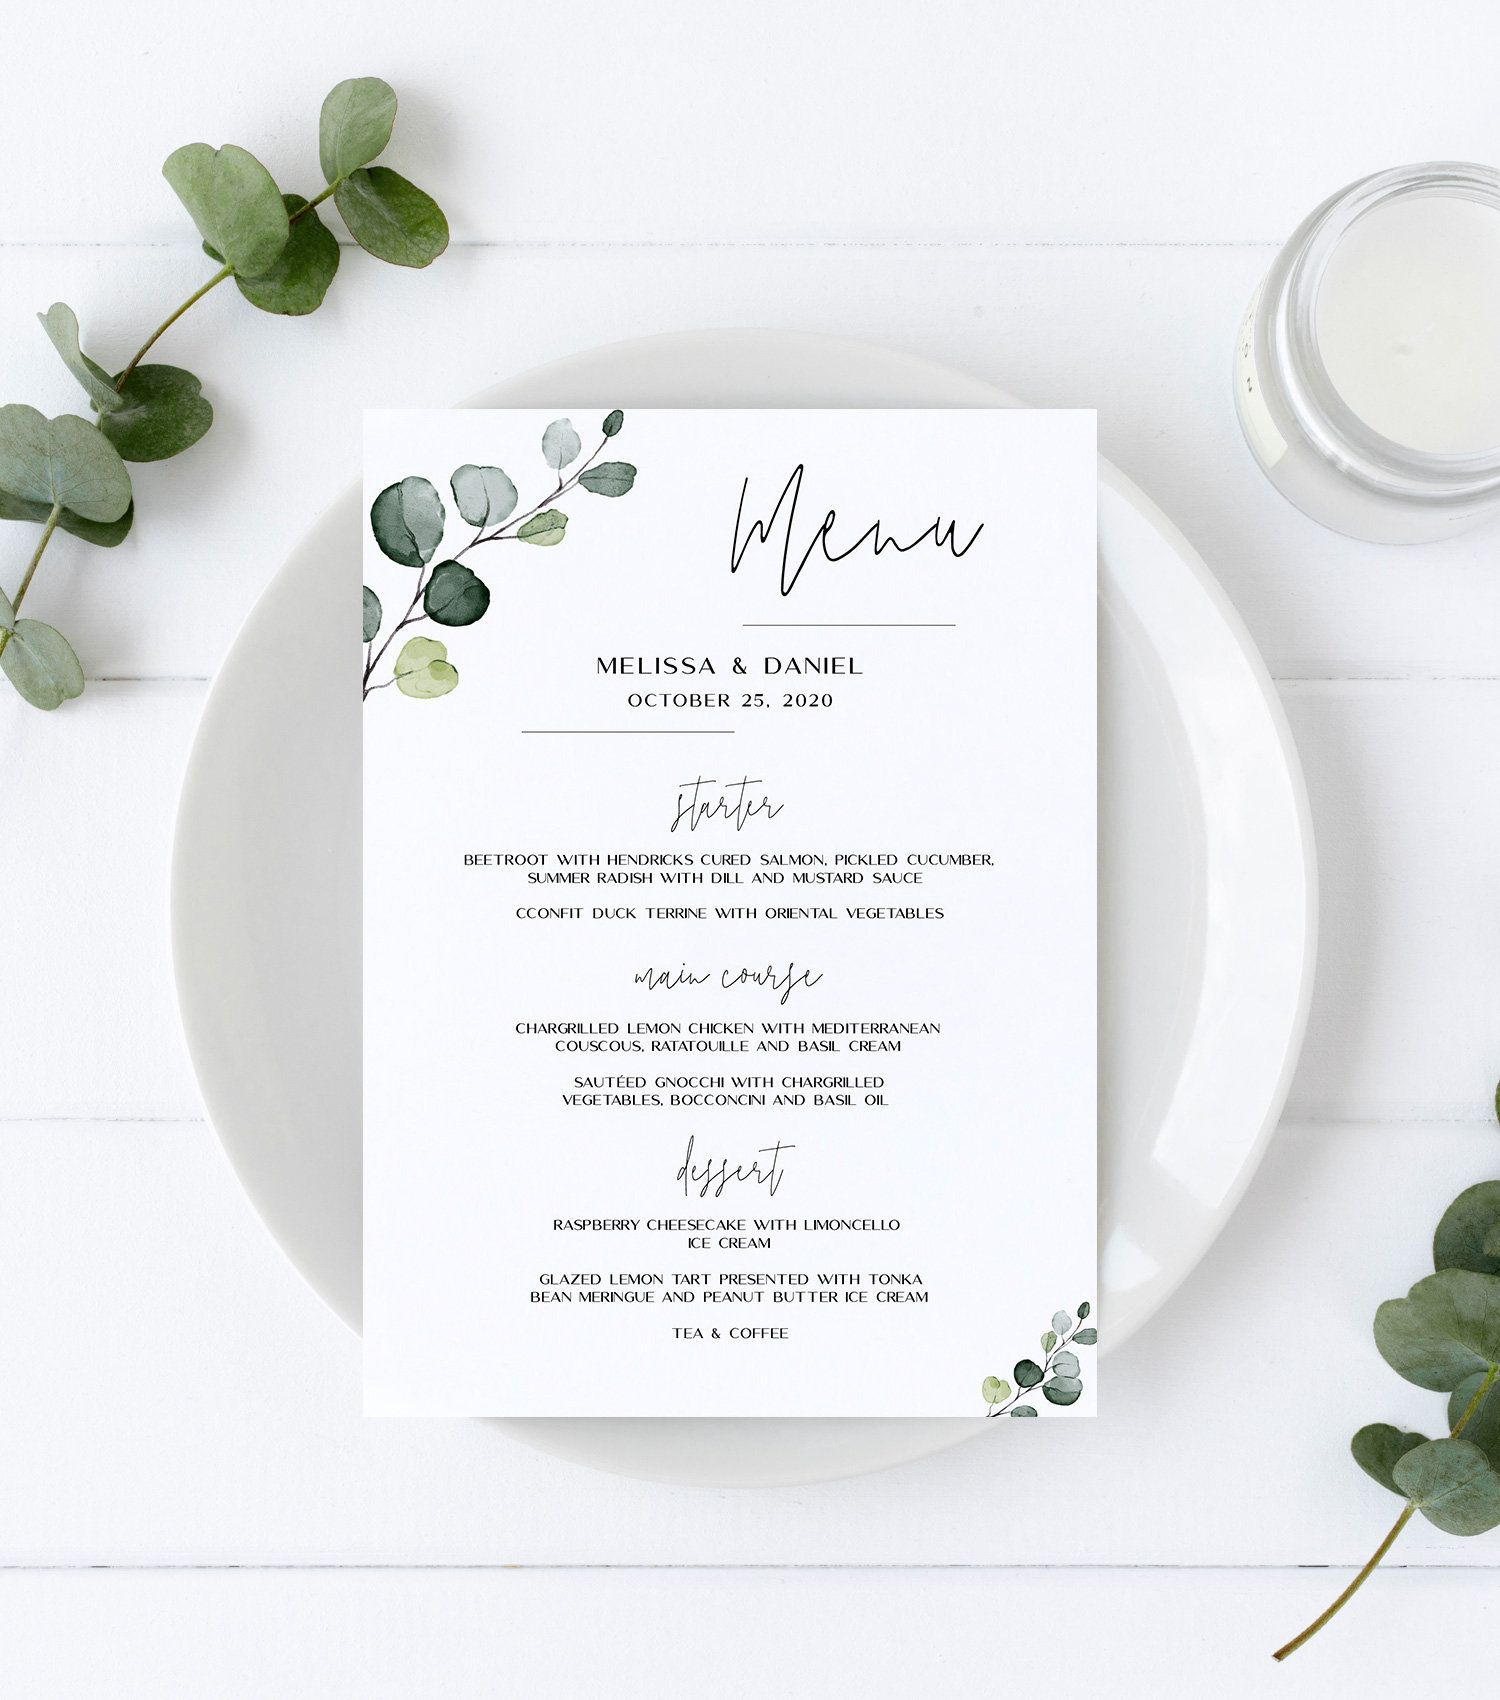 Wedding Menu Template With Hand Painted Watercolor Eucalyptus Etsy Wedding Menu Template Wedding Menu Menu Template